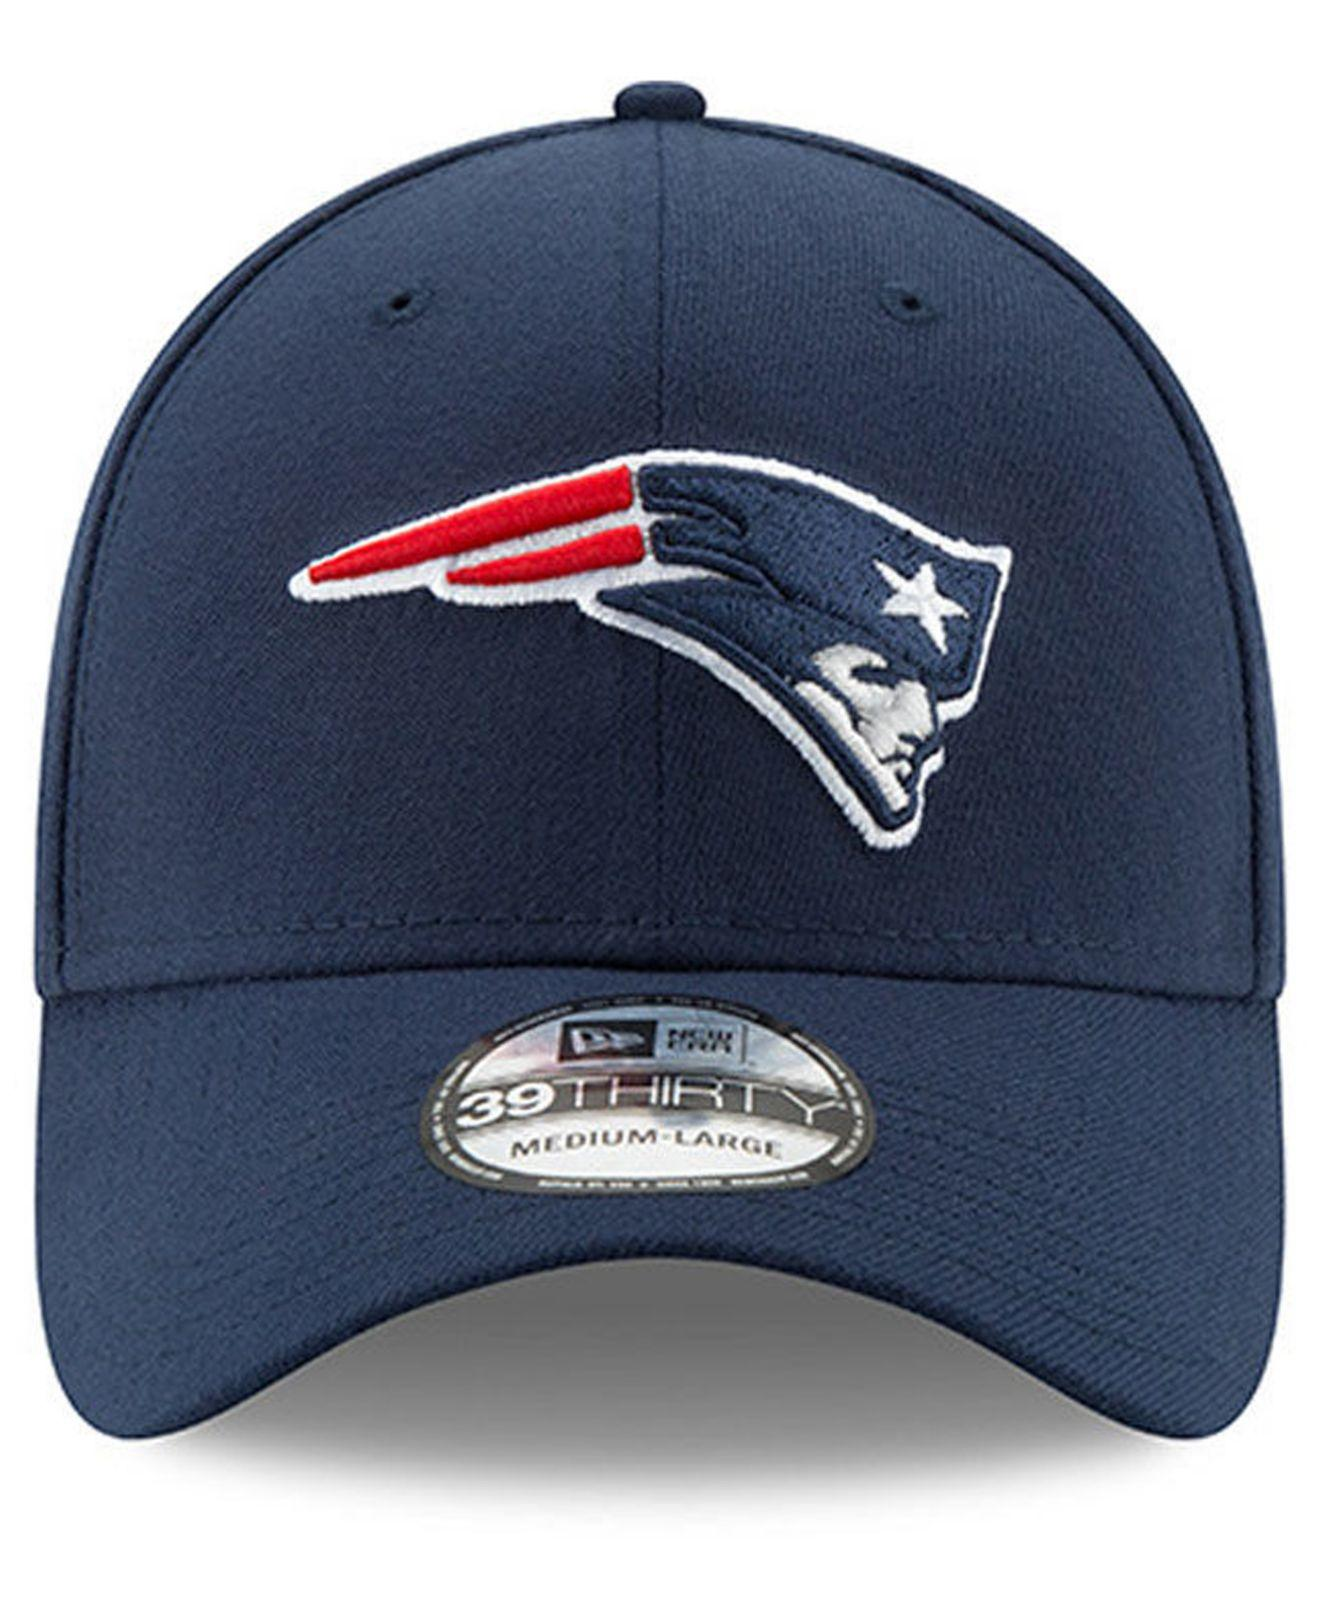 e30ea0a3d4f Lyst - KTZ New England Patriots Super Bowl Liii Team Classic Patch 39thirty  Stretch Fitted Cap in Blue for Men